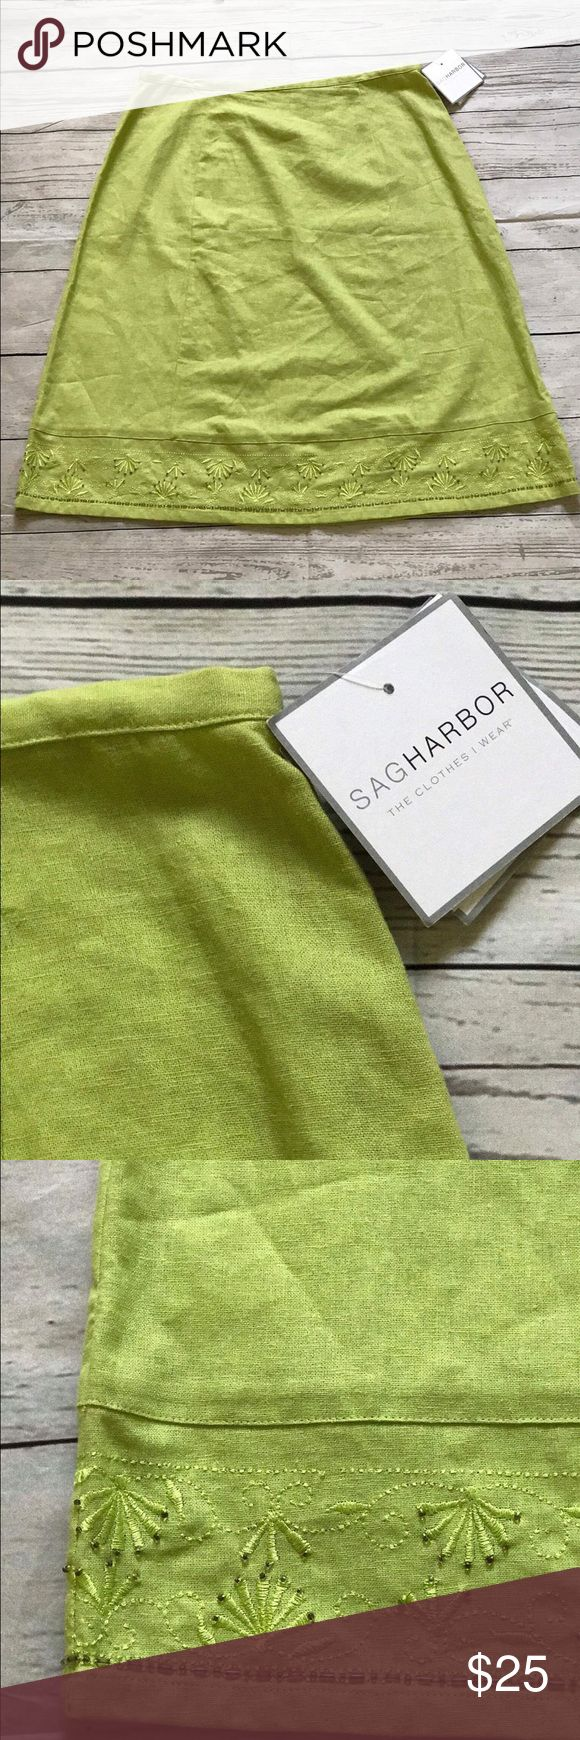 New!!! Sagharbor Green Skirt Size 14 A23 Sag Harbor Green Skirt Size 14 A23.  Detailed design at the bottom. 55% Linen 45%Rayon.  New with Tags. Sag Harbor Skirts A-Line or Full